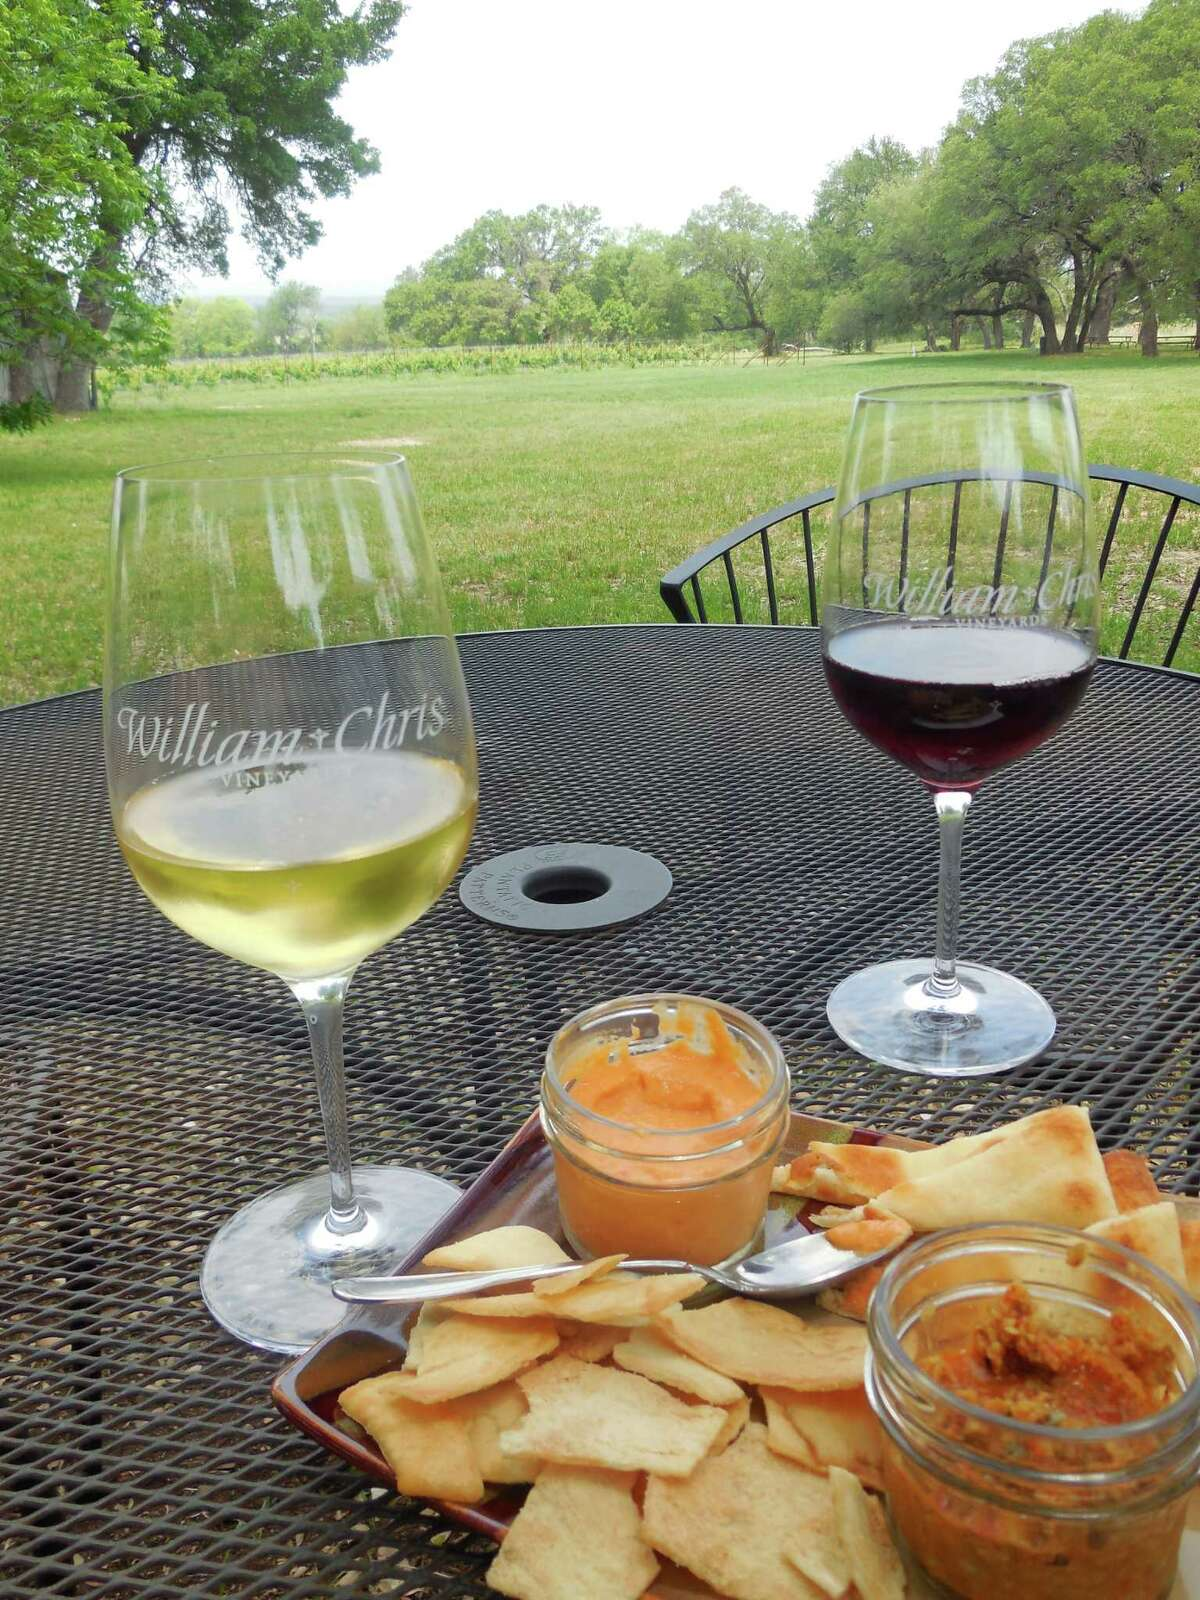 Tables on the lawn at William Chris Wonery give guests a chance to enjoy snacks with wine from the winery in Hye, on U.S. 290 between Johnson City and Fredericksburg